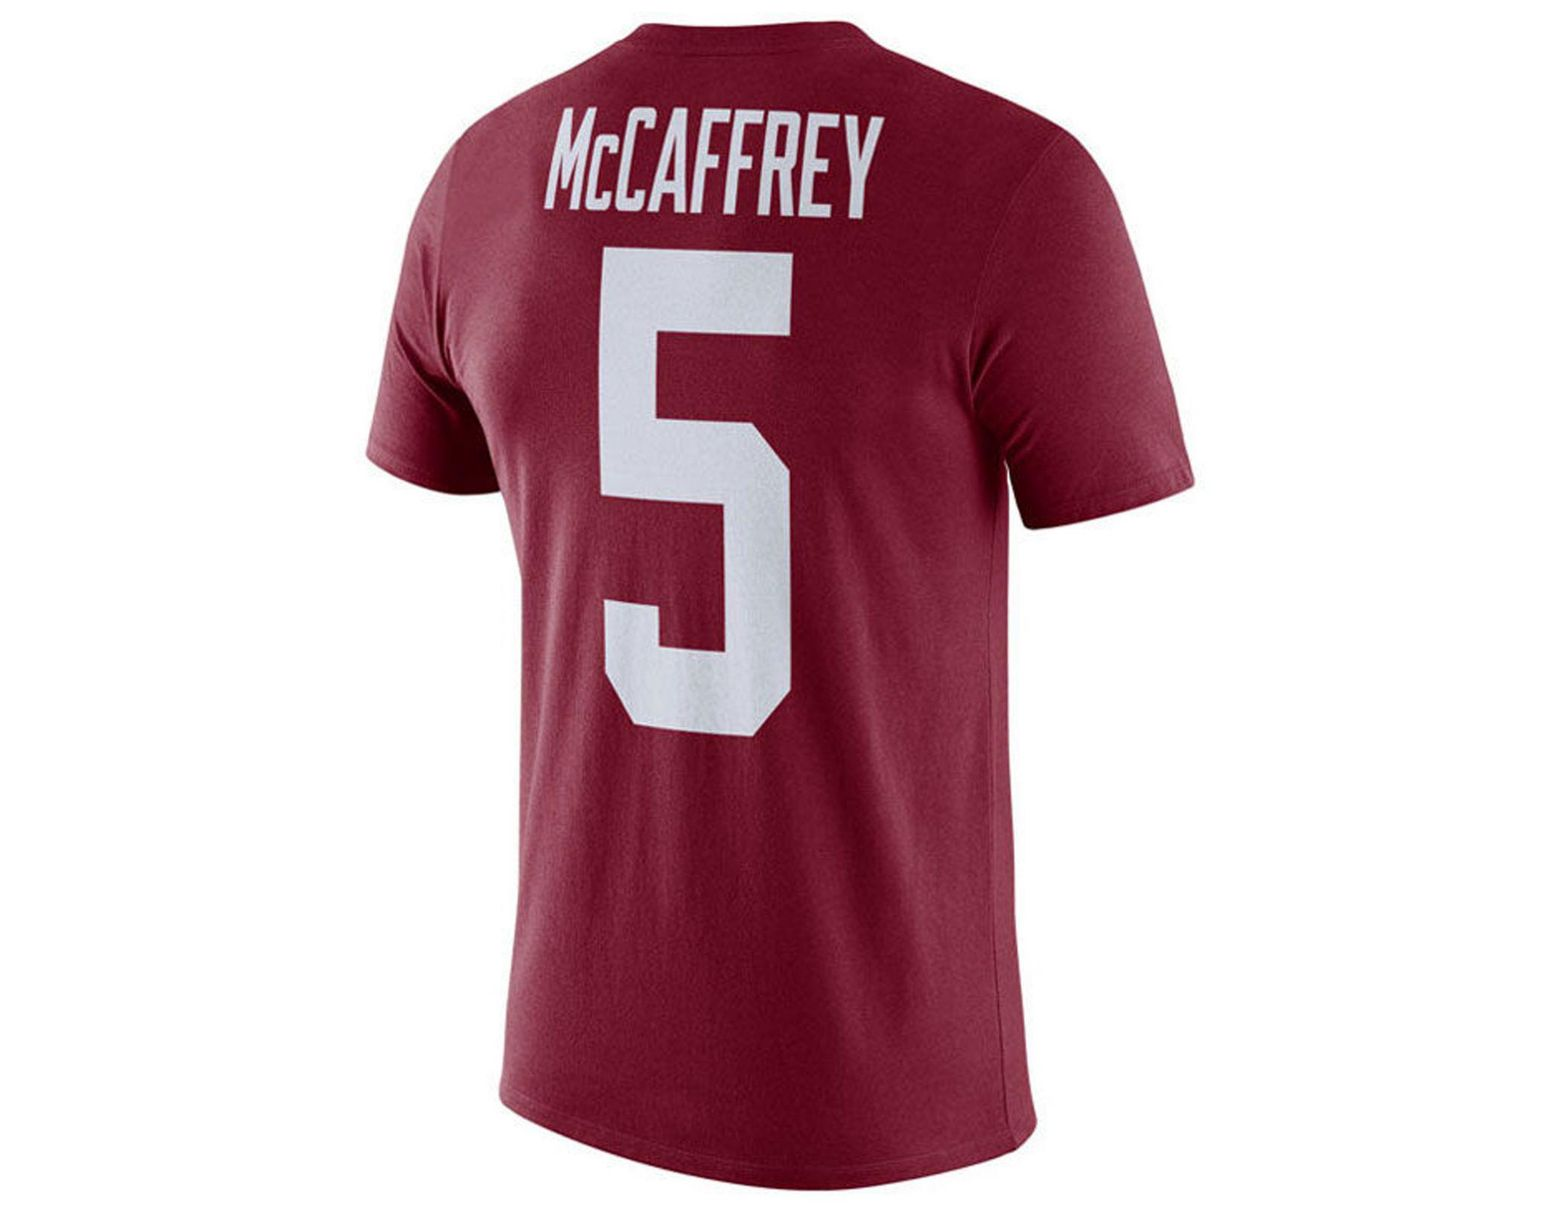 e5bde618 Lyst - Nike Christian Mccaffrey Stanford Cardinal Name And Number T-shirt  in Red for Men